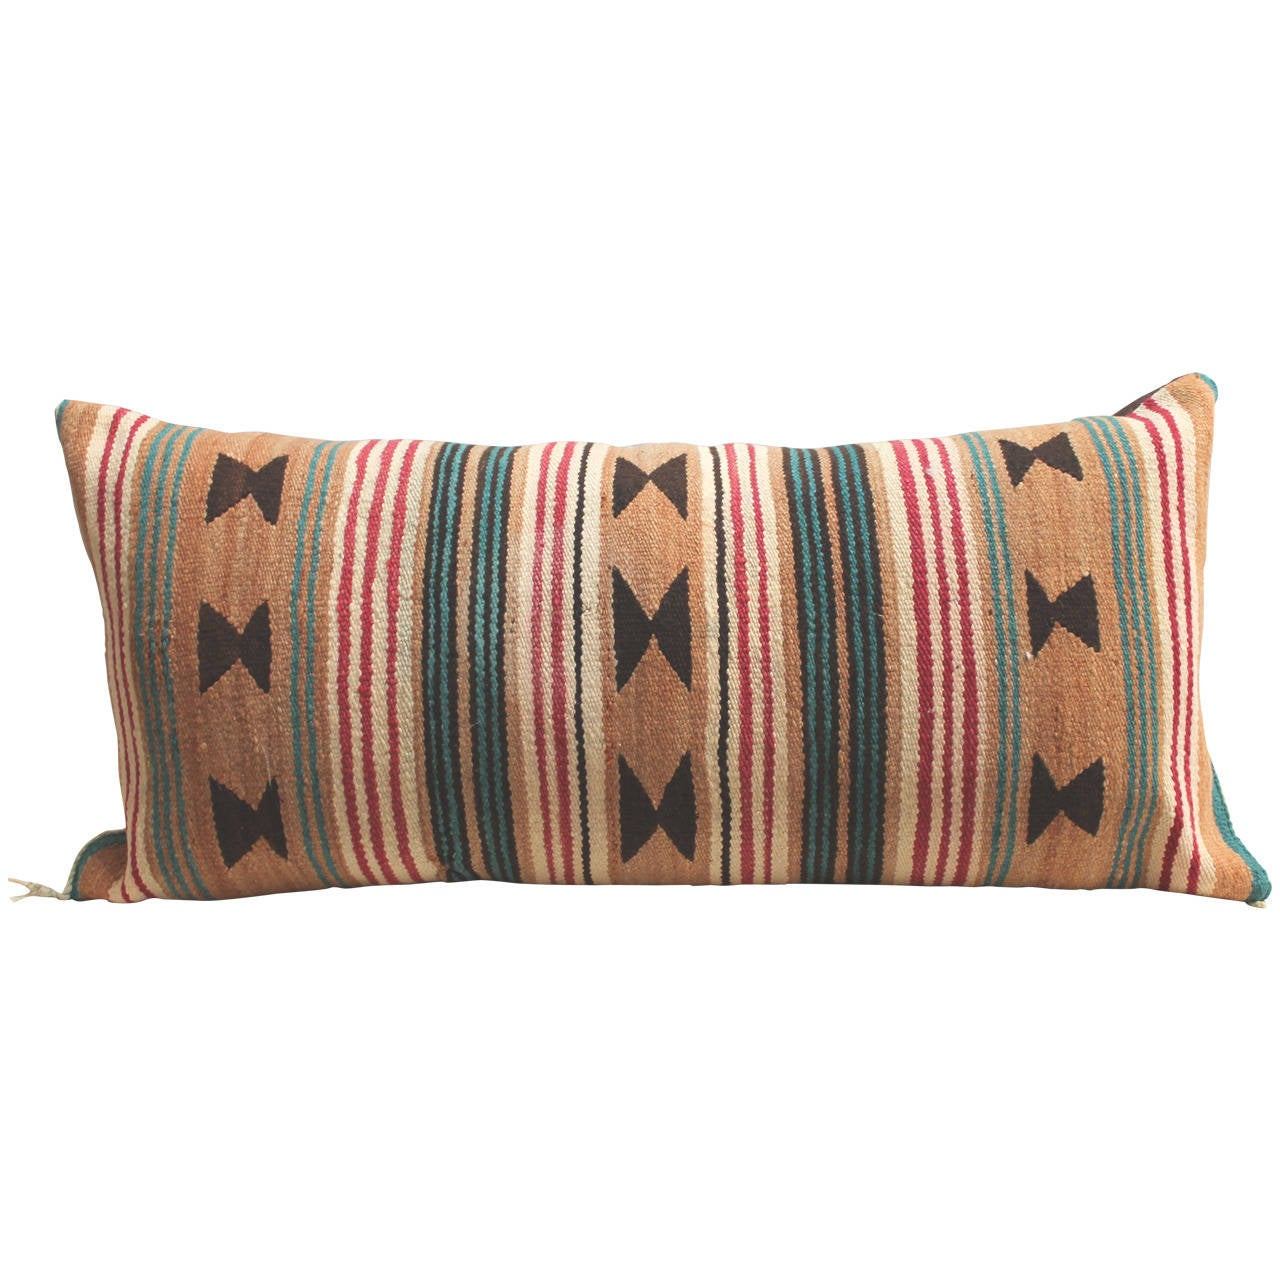 Early Navajo Weaving Saddle Blanket Bolster At 1stdibs